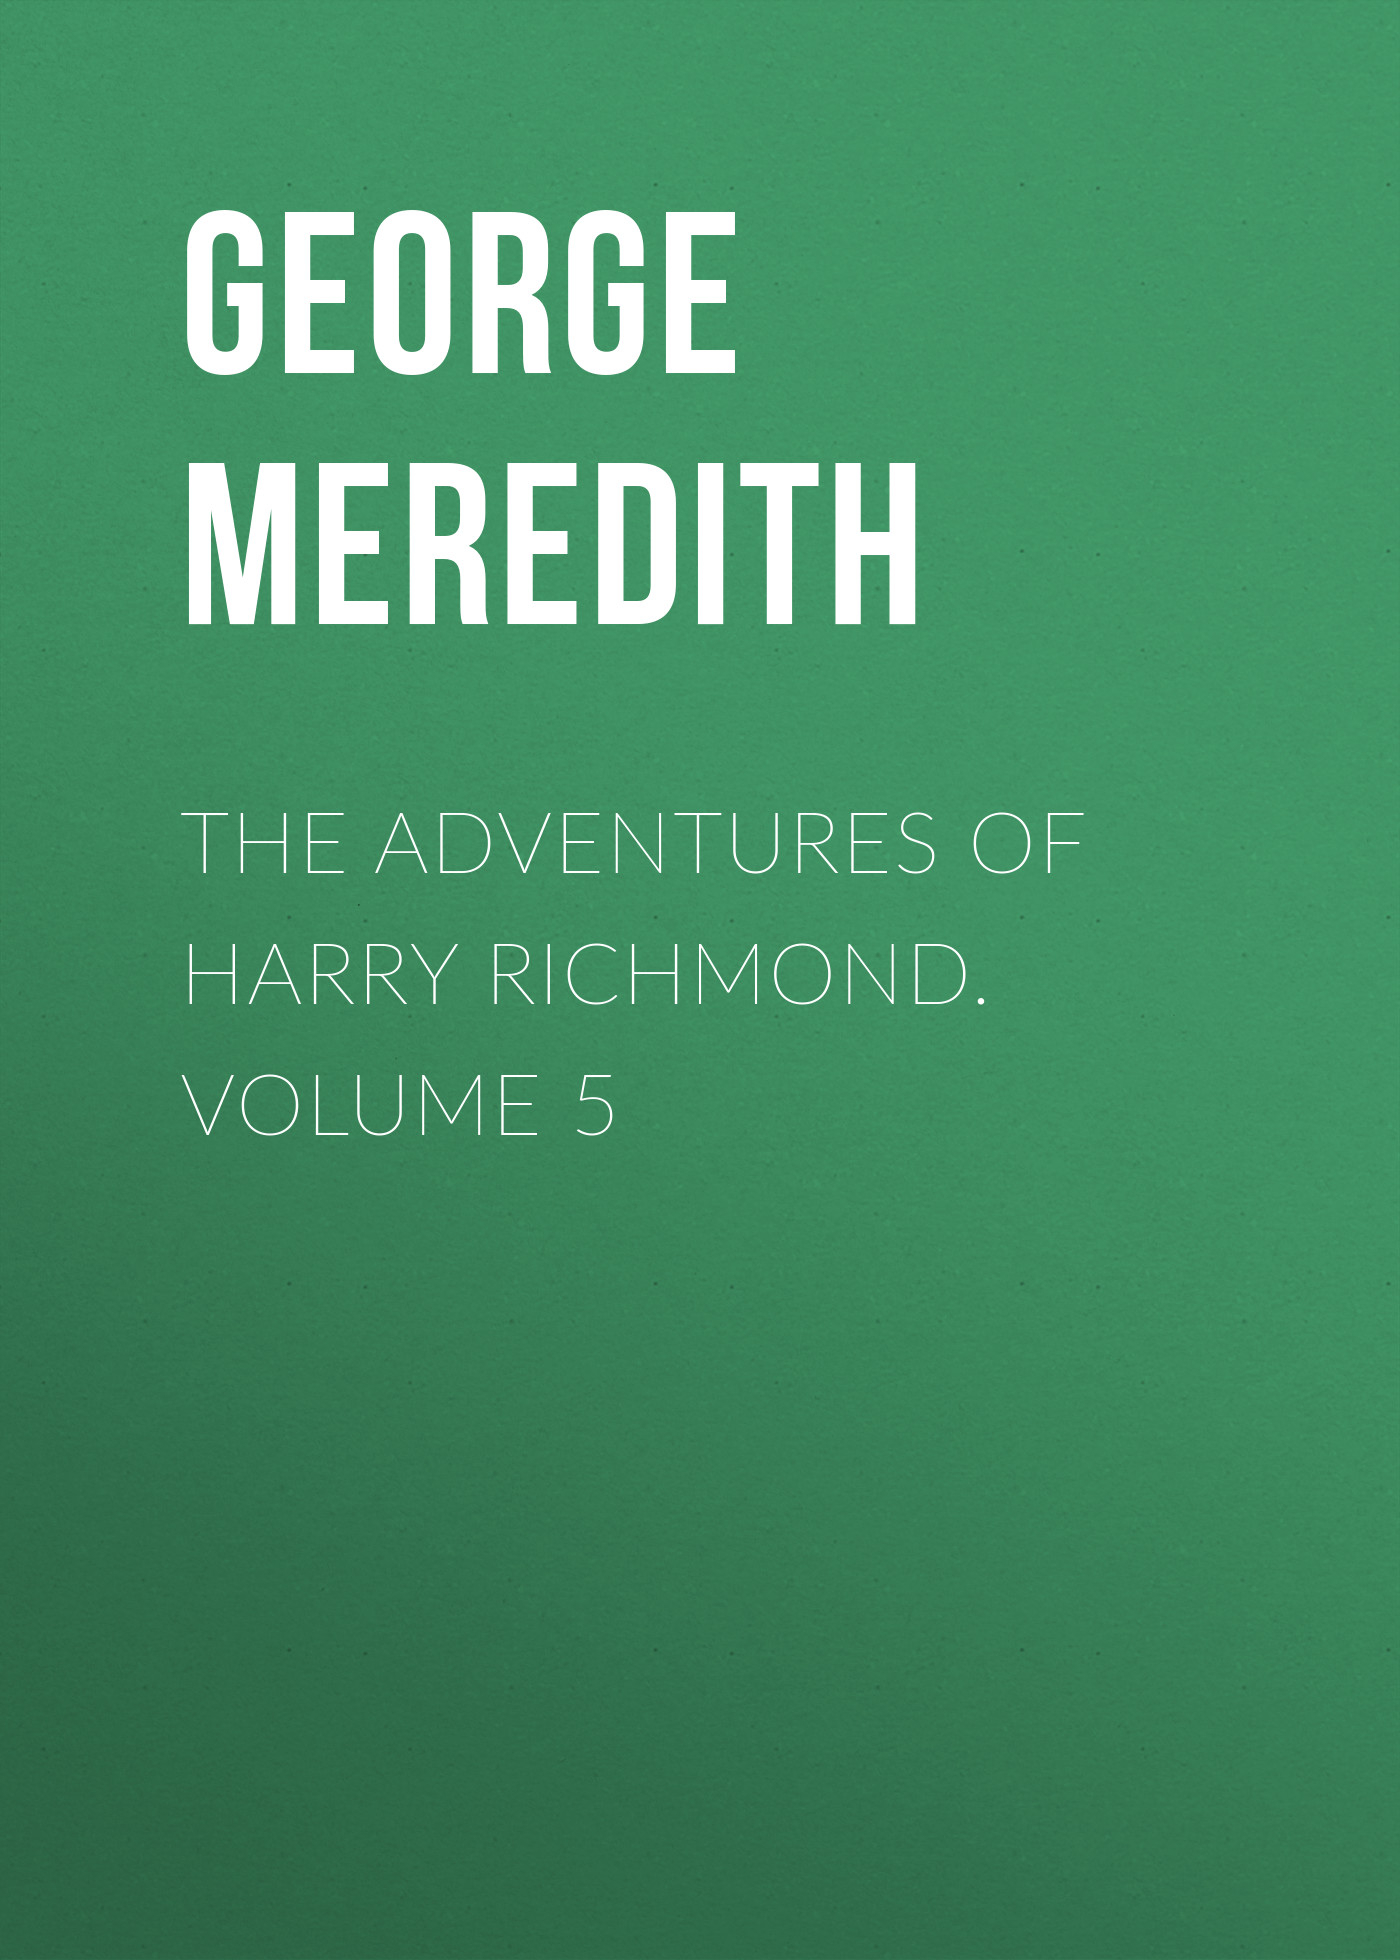 George Meredith The Adventures of Harry Richmond. Volume 5 george meredith rhoda fleming volume 5